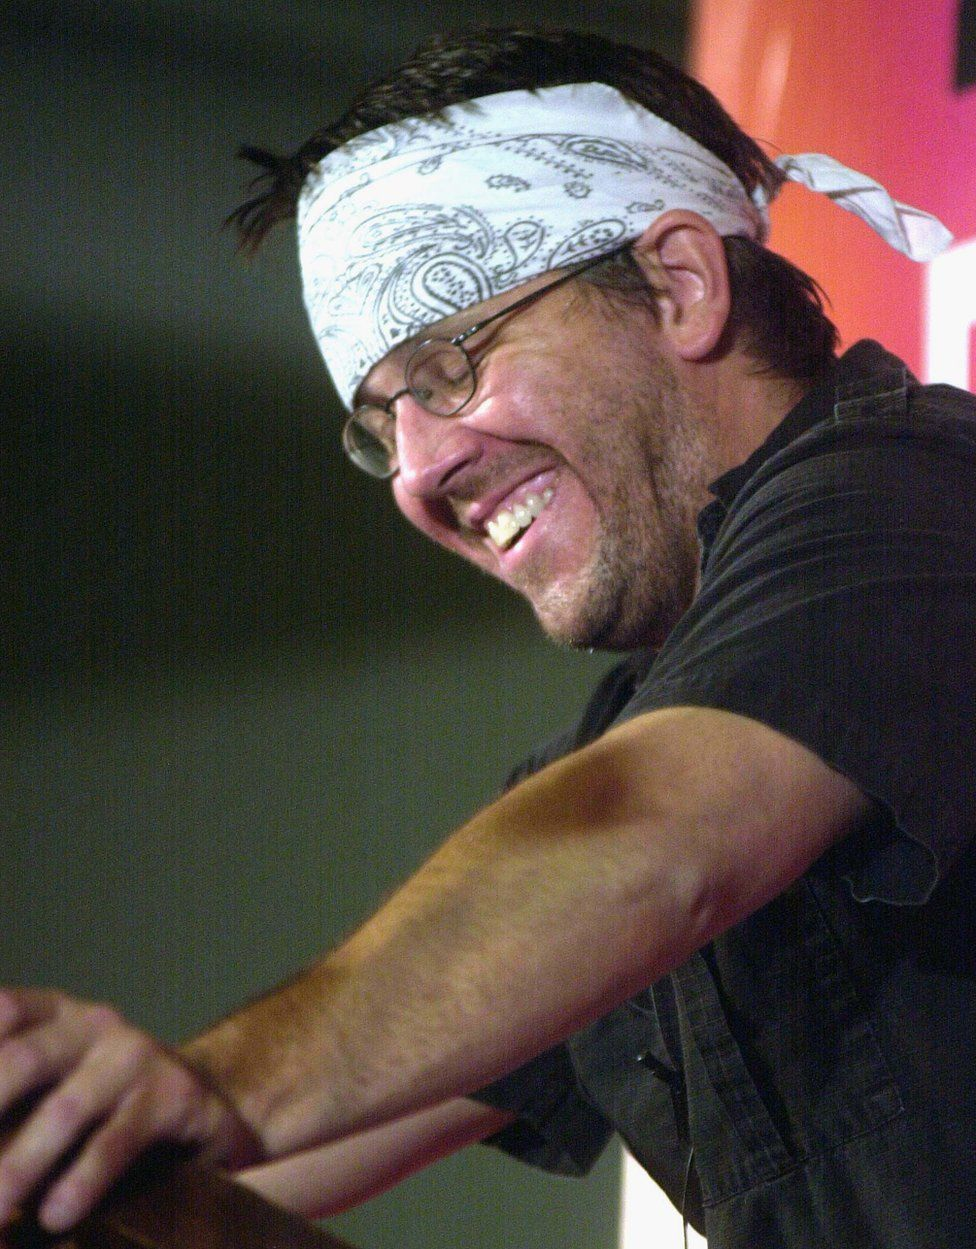 David Foster Wallace reading from a selection of his writings in New York in 2002